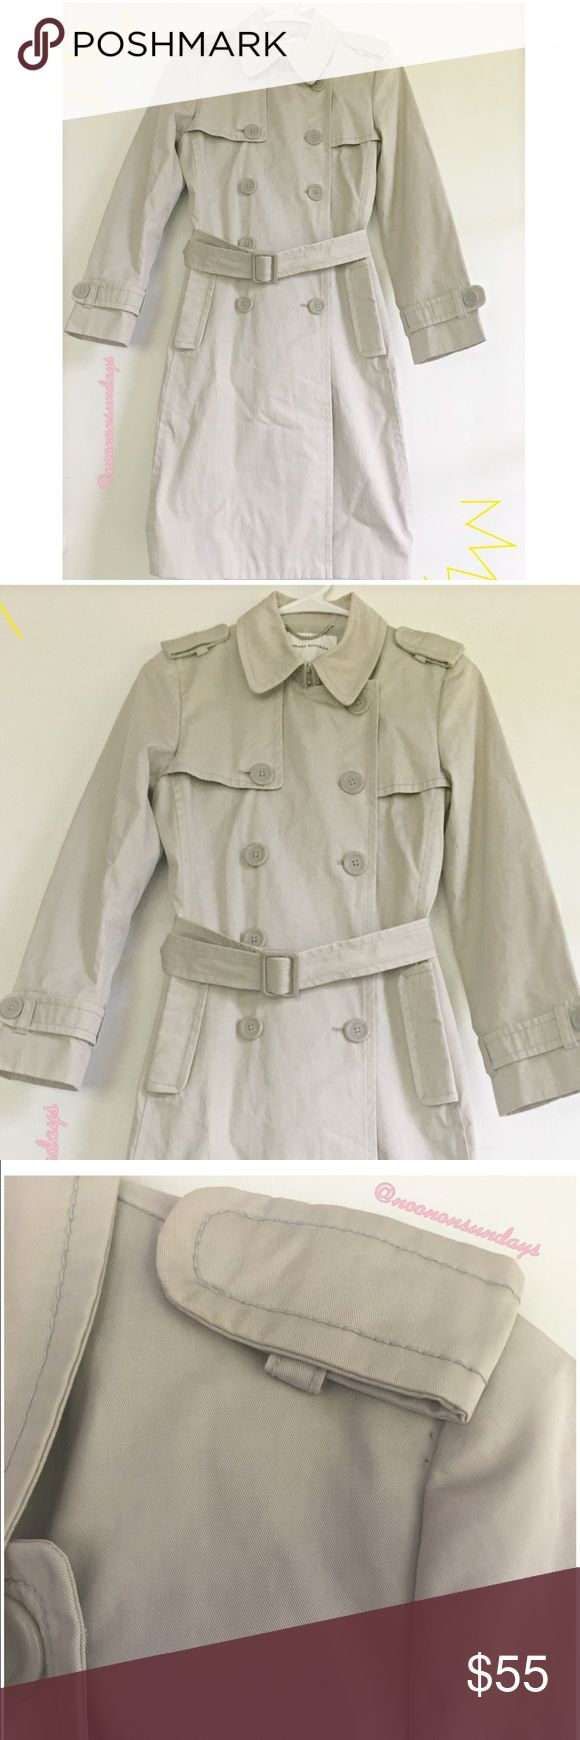 🌟Banana Republic Trench Coat 🌟 Banana Republic beige trench coat, size XS, petite, belt included, small stain on collar (as shown), 💯 % cotton lining. Pre-loved and in Great condition! Banana Republic Jackets & Coats Trench Coats